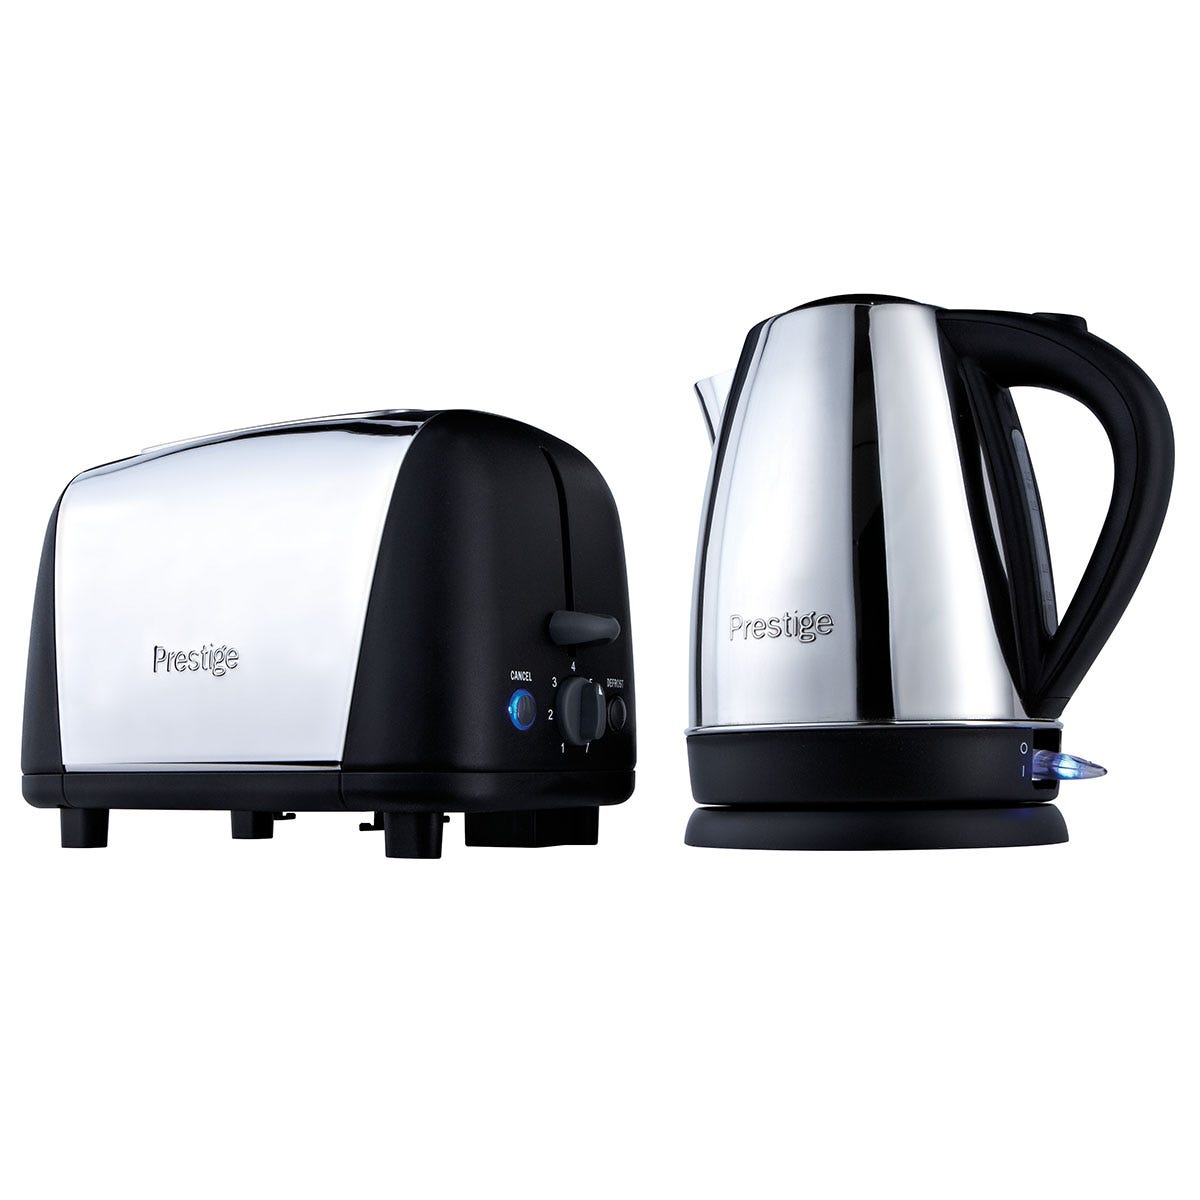 Prestige 53232 Breakfast Kettle and Toaster Set - Stainless Steel and Black